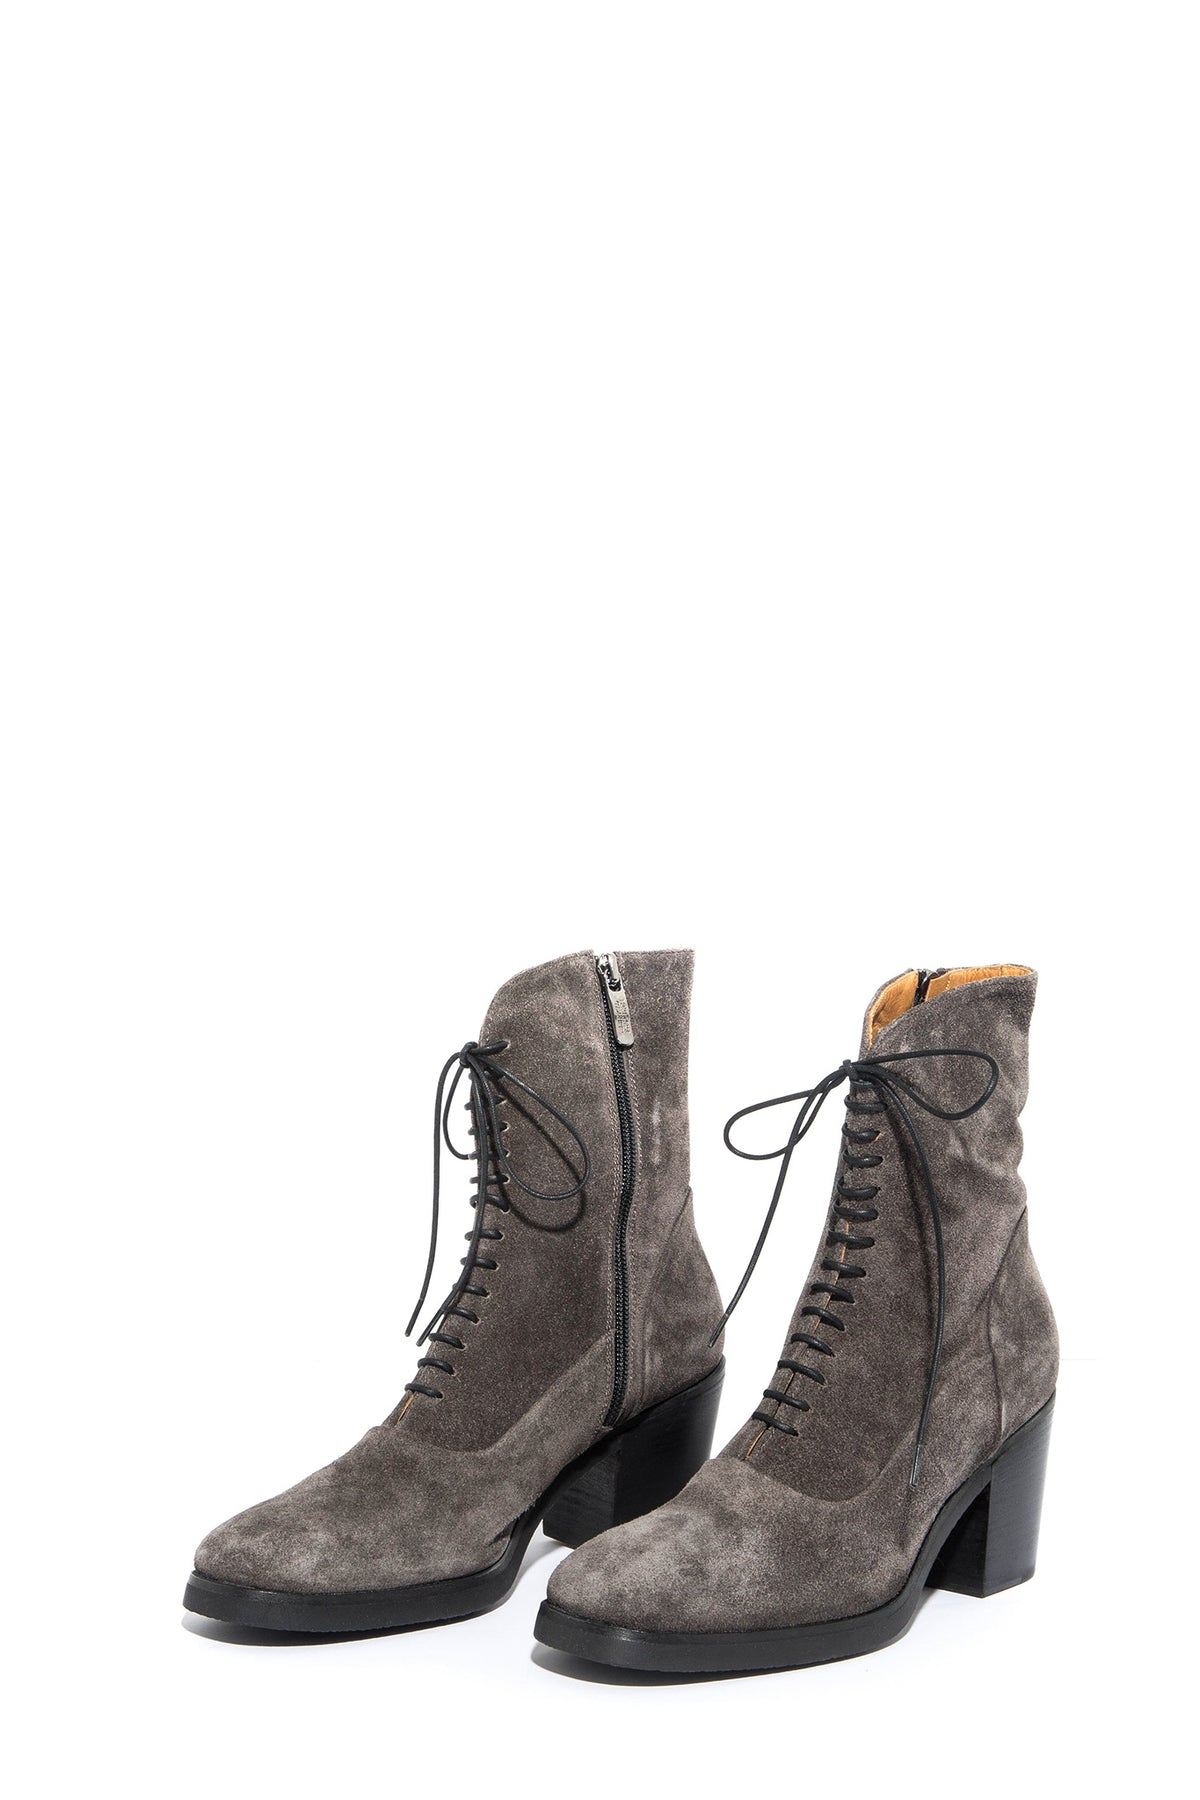 Alberto Fasciani Sandra Grey Suede Lace Up Boot (3558600933469)